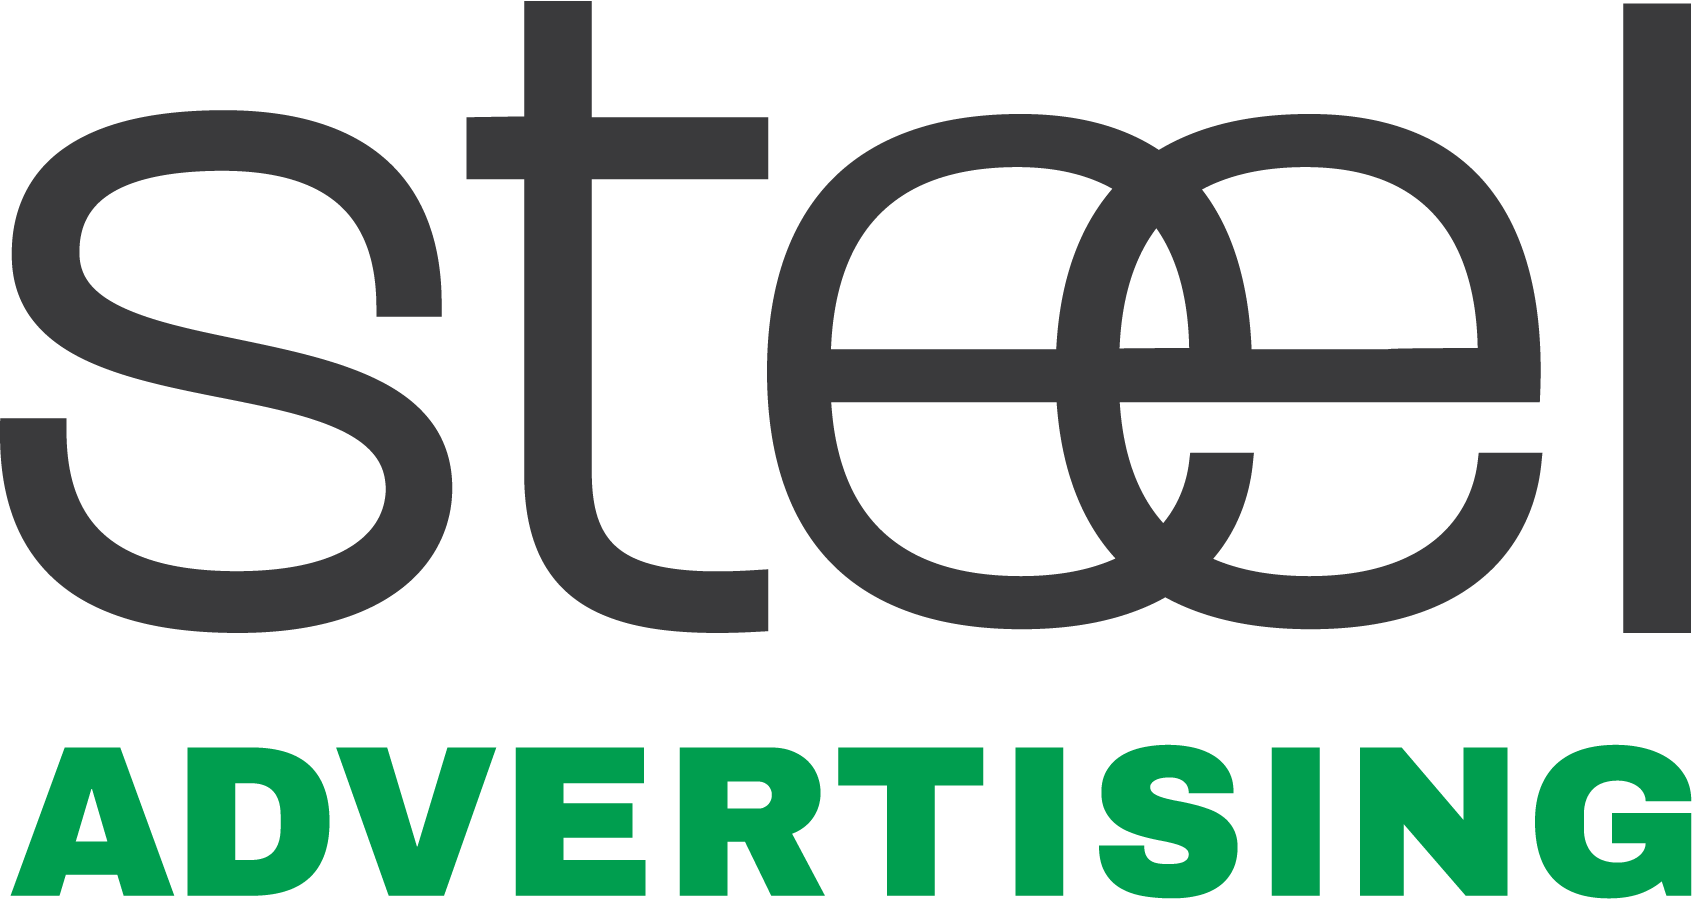 Steel Advertising Logo